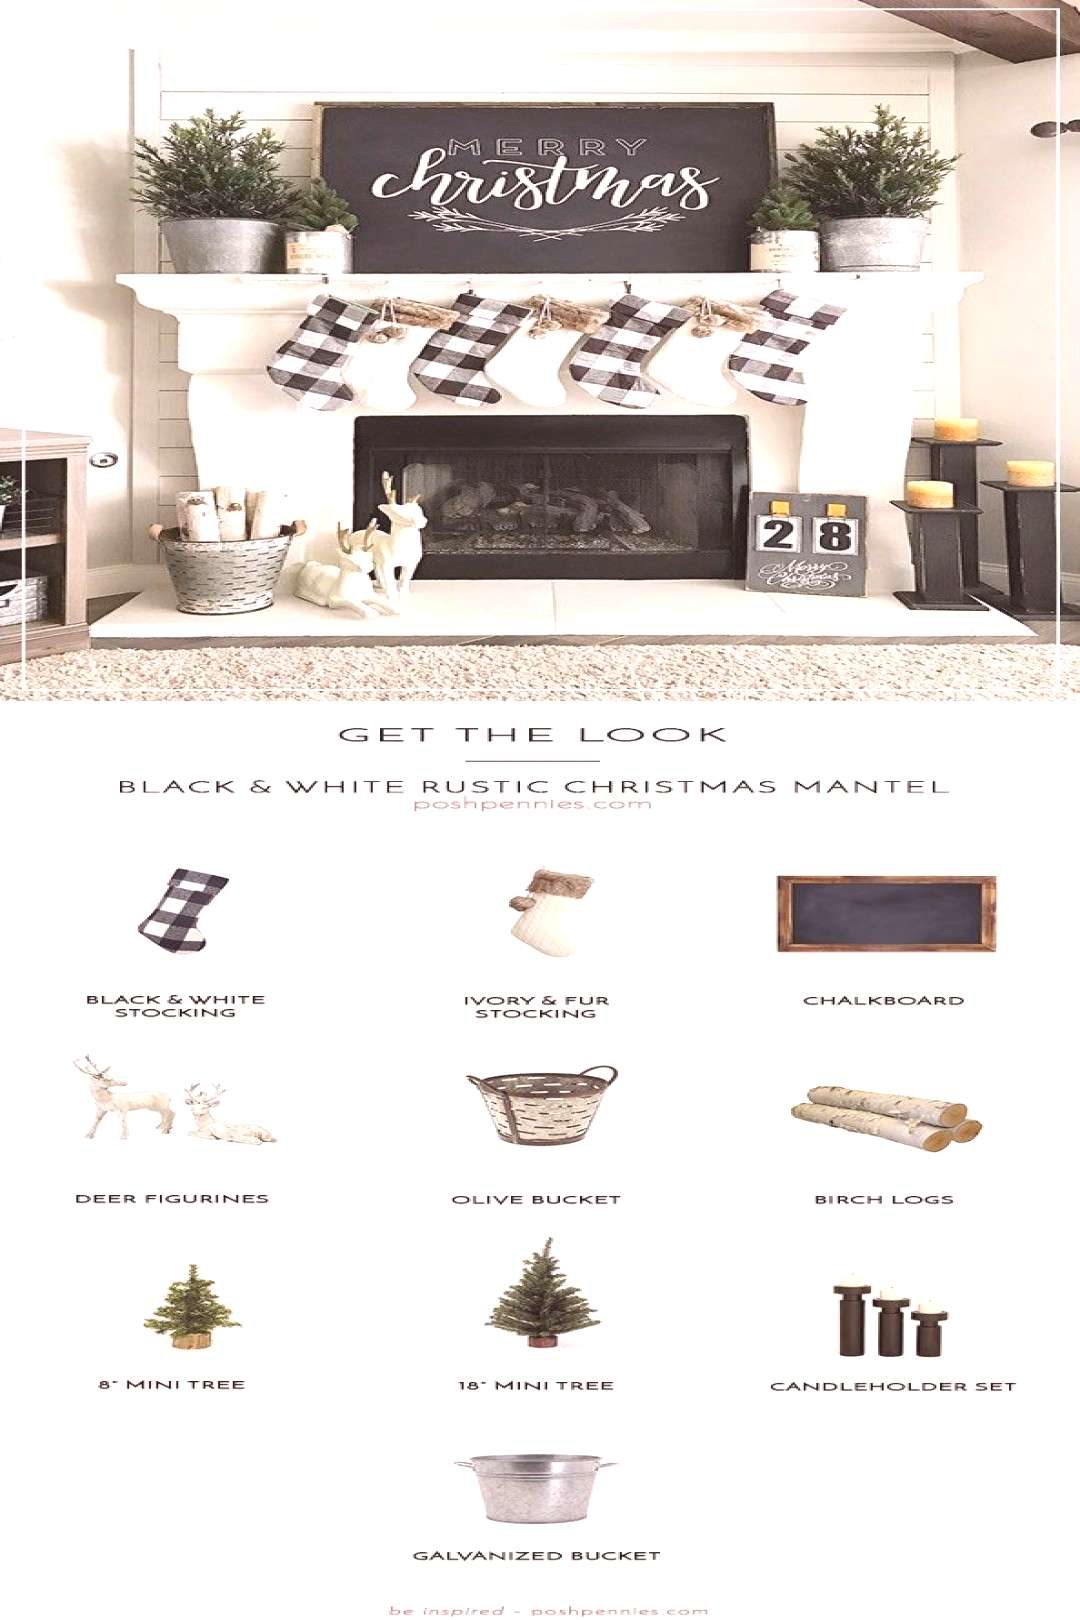 posh Learn how to recreate this amazing black and white rustic Christmas mantel! Spruce up your hol